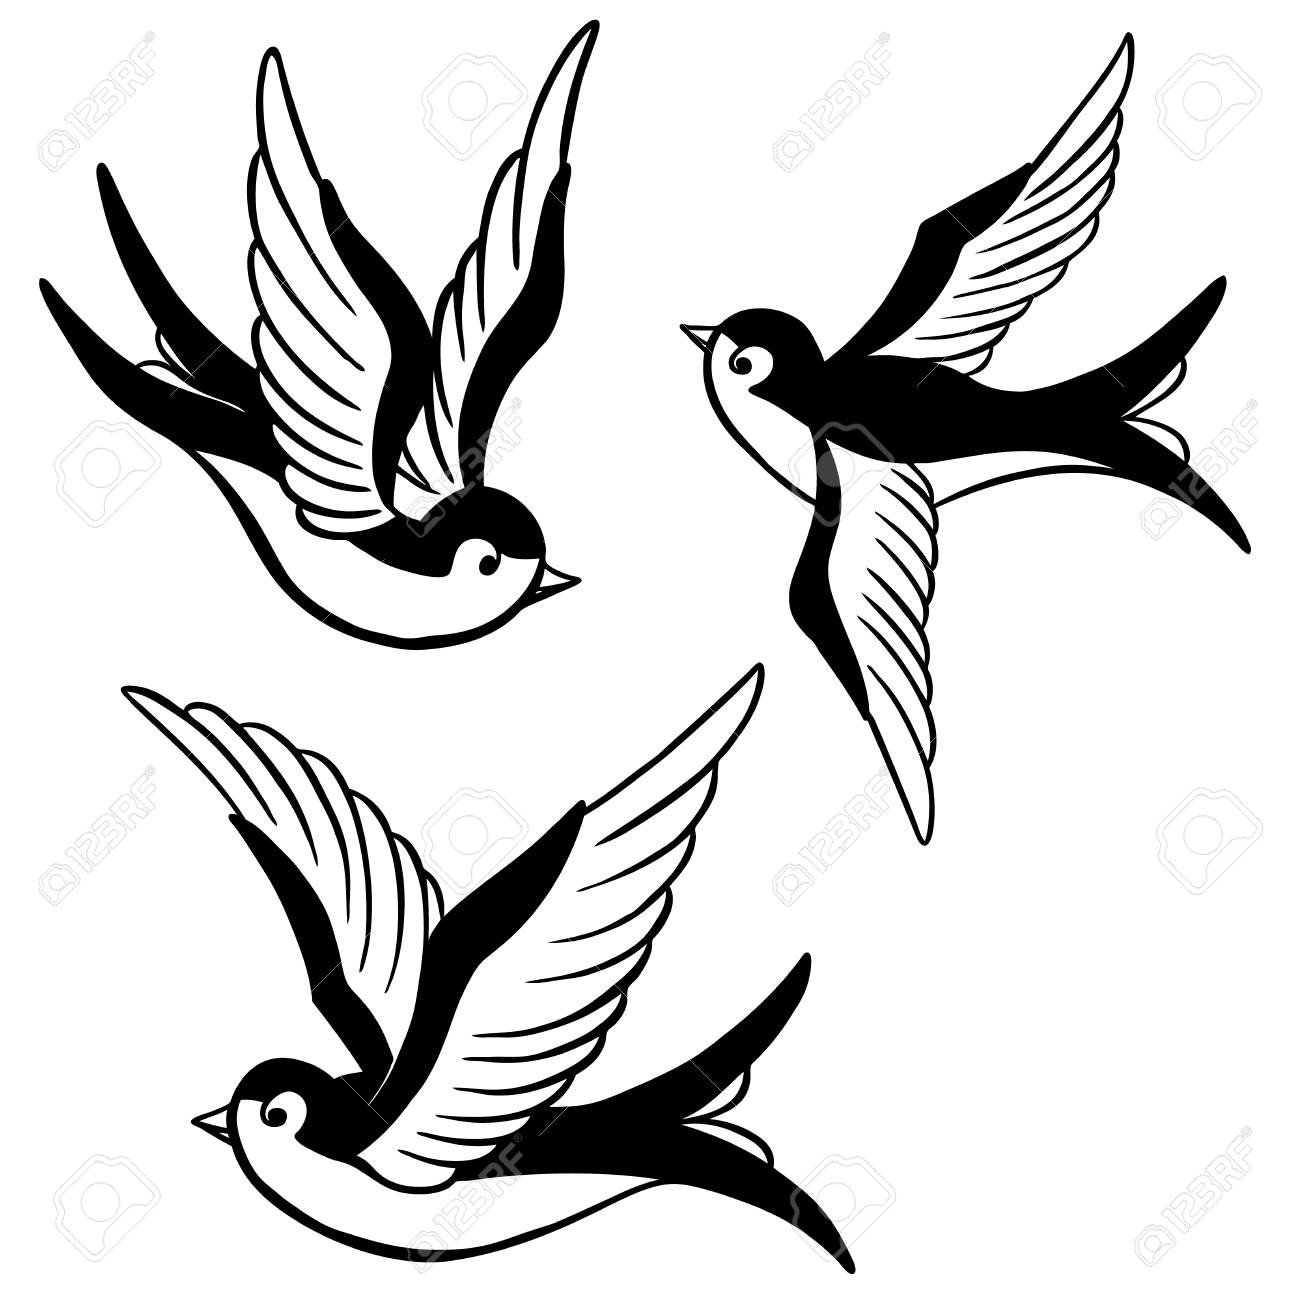 set of the swallow icons. Design elements for poster, t-shirt. Vector illustration. - 81714419